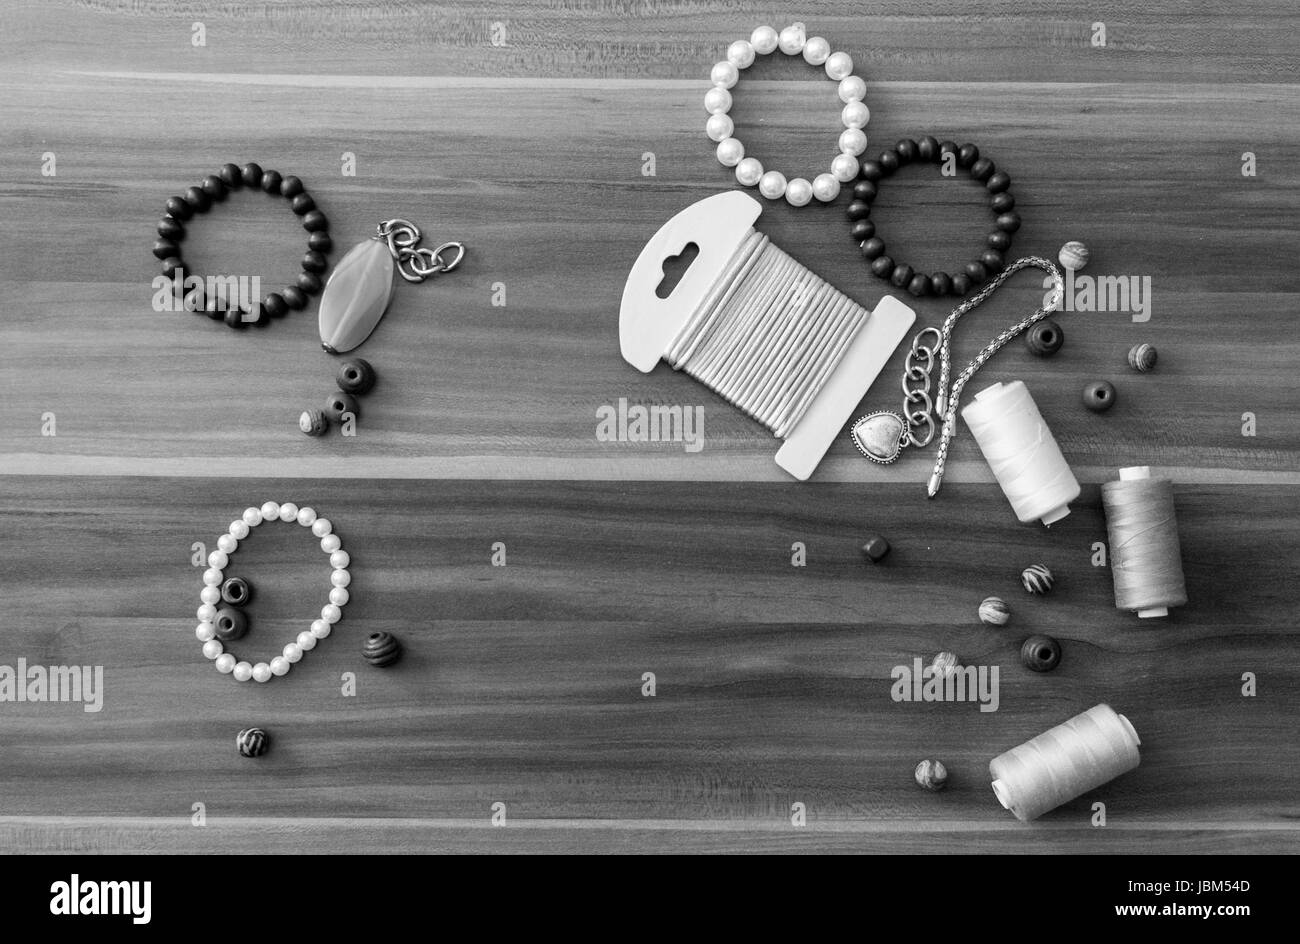 Beads, pearls, thread and string for handcrafting - Stock Image